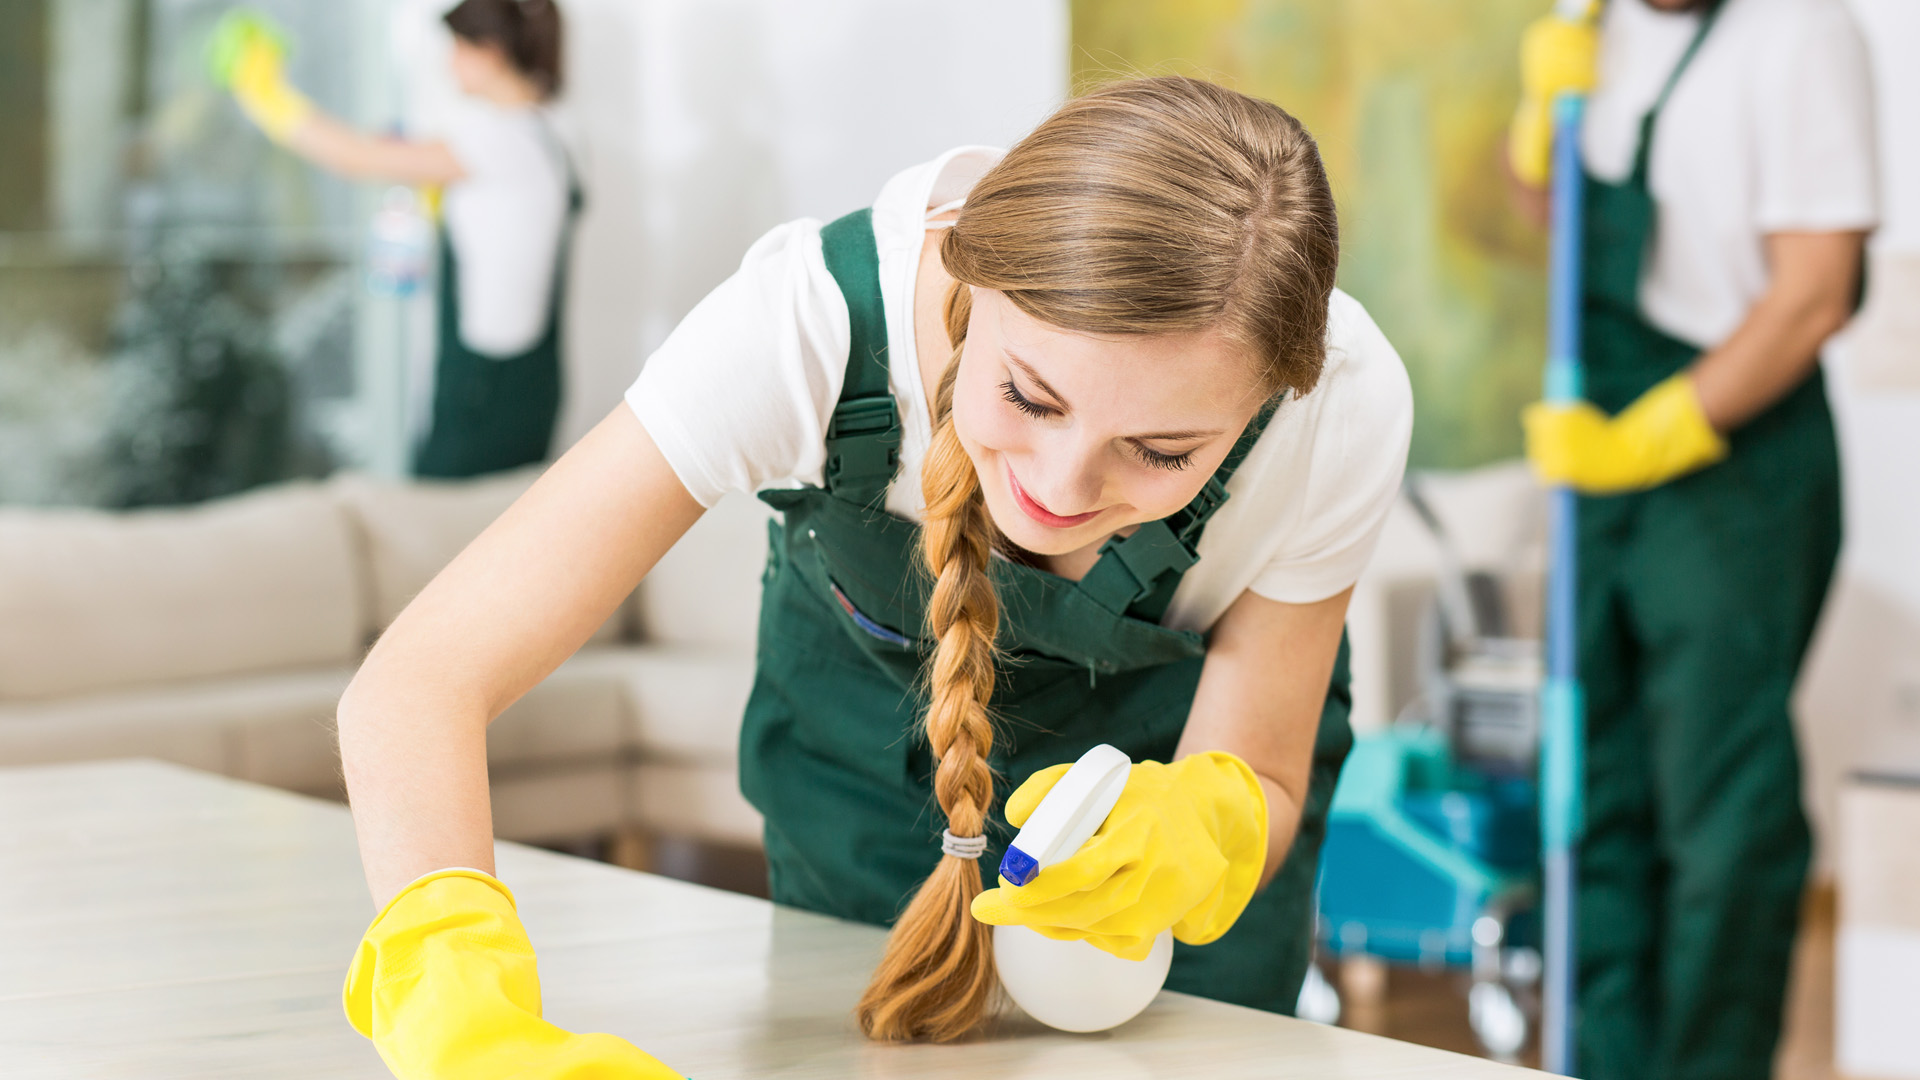 cleaning services in dubai, cleaning tips